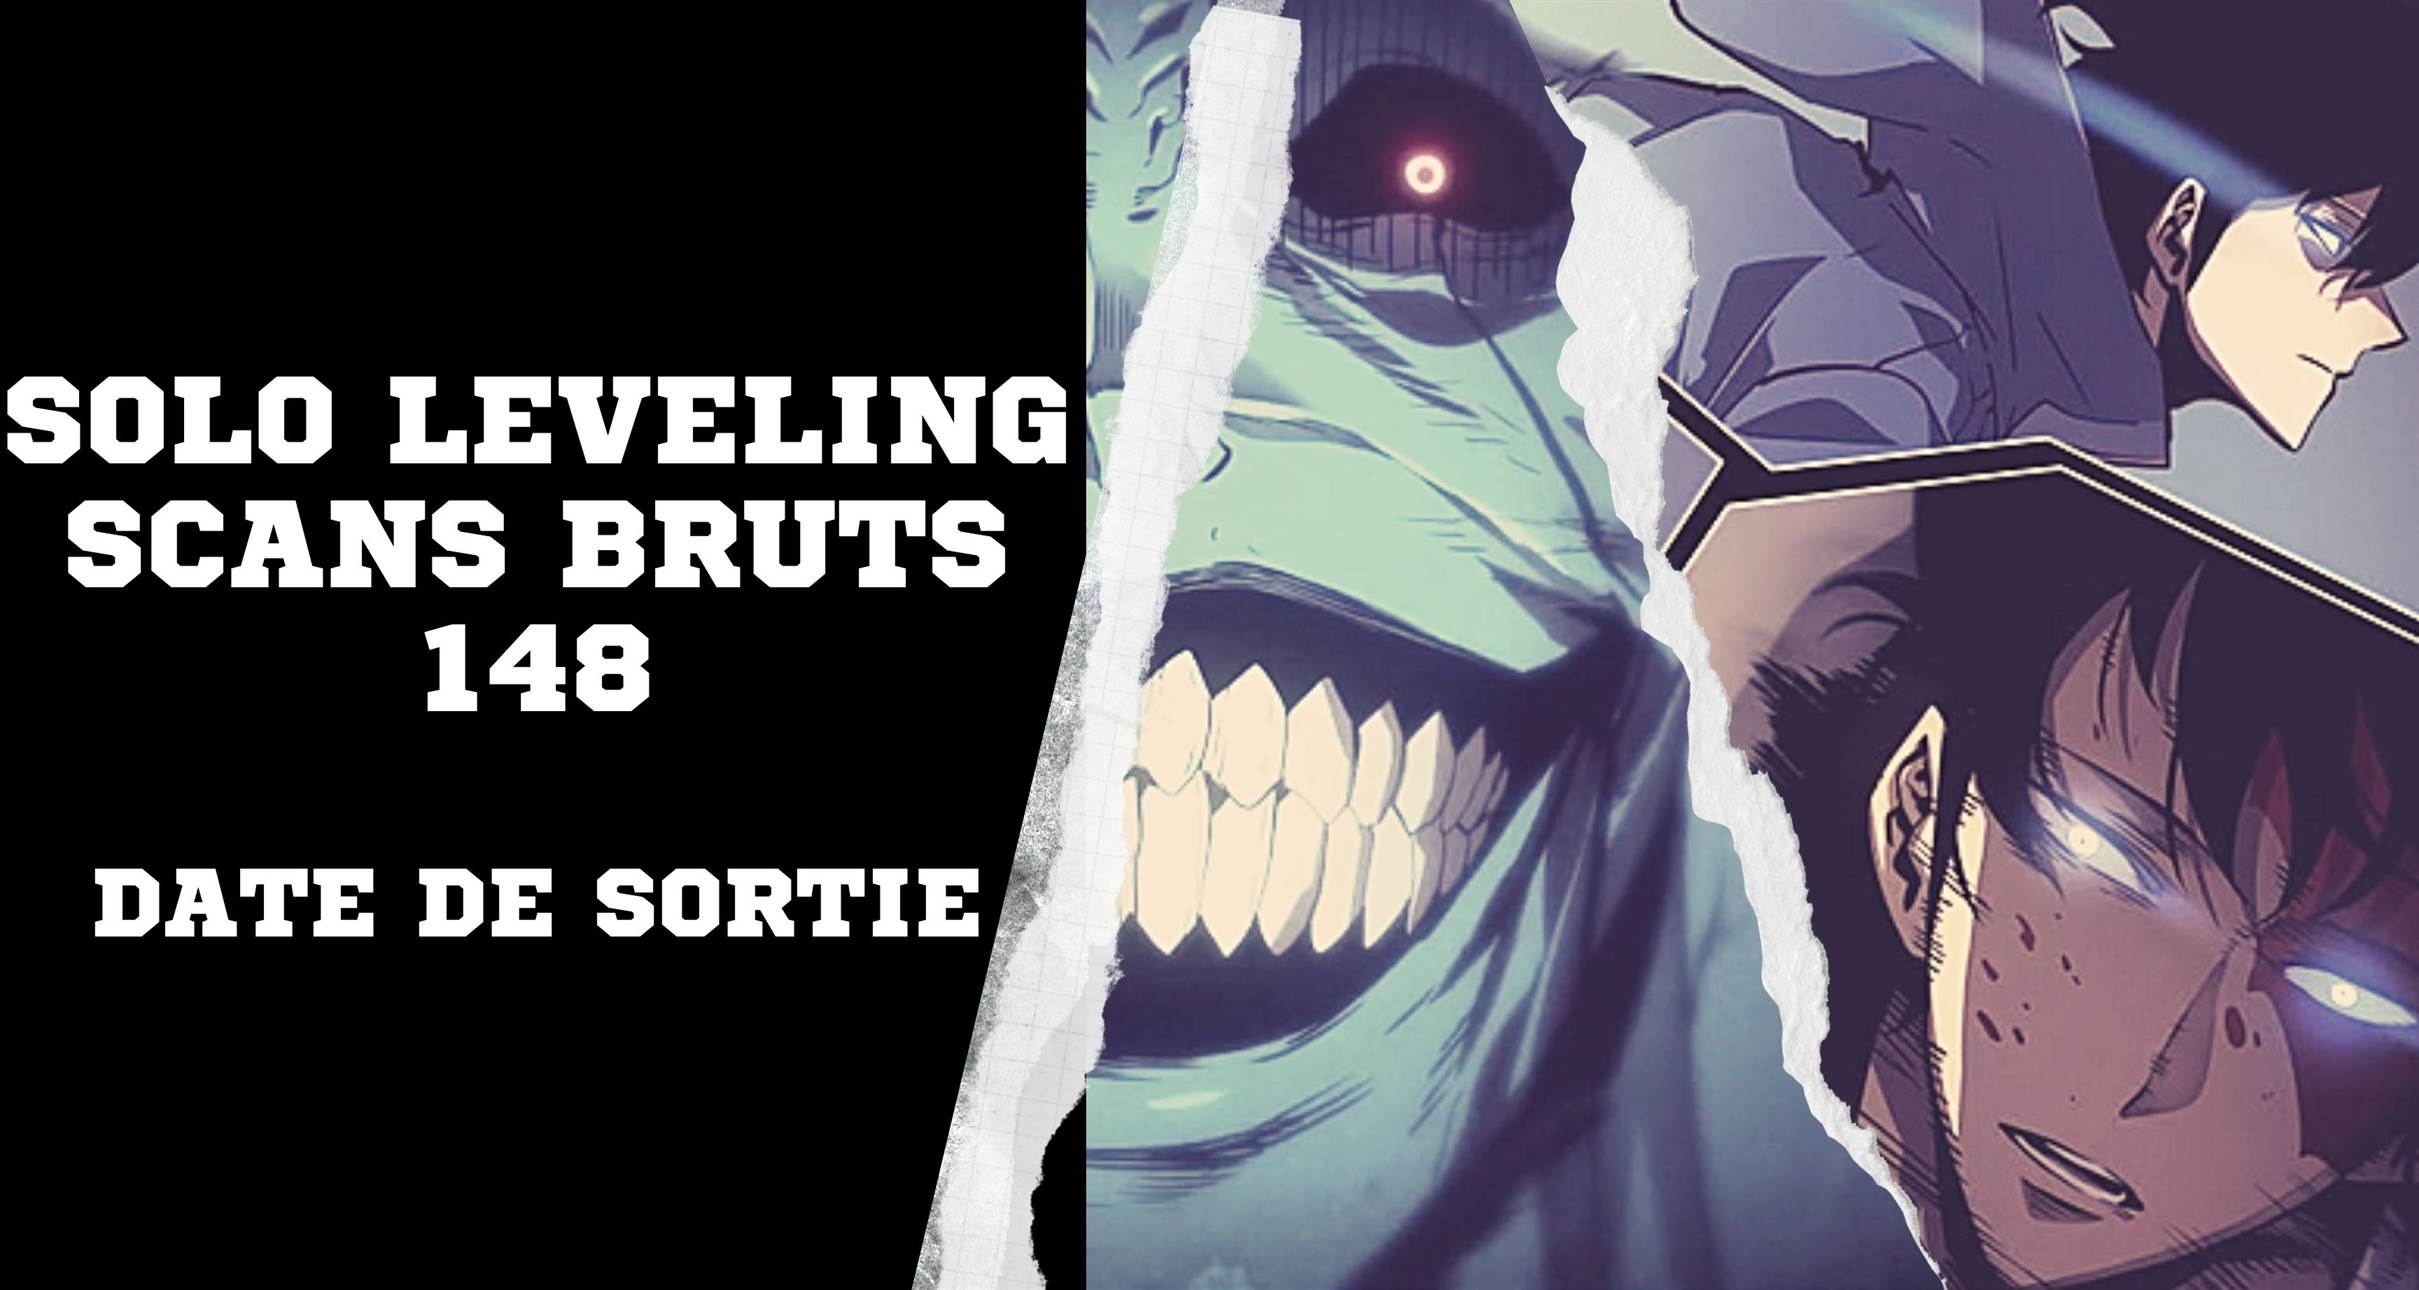 Solo Leveling Scans Bruts 148